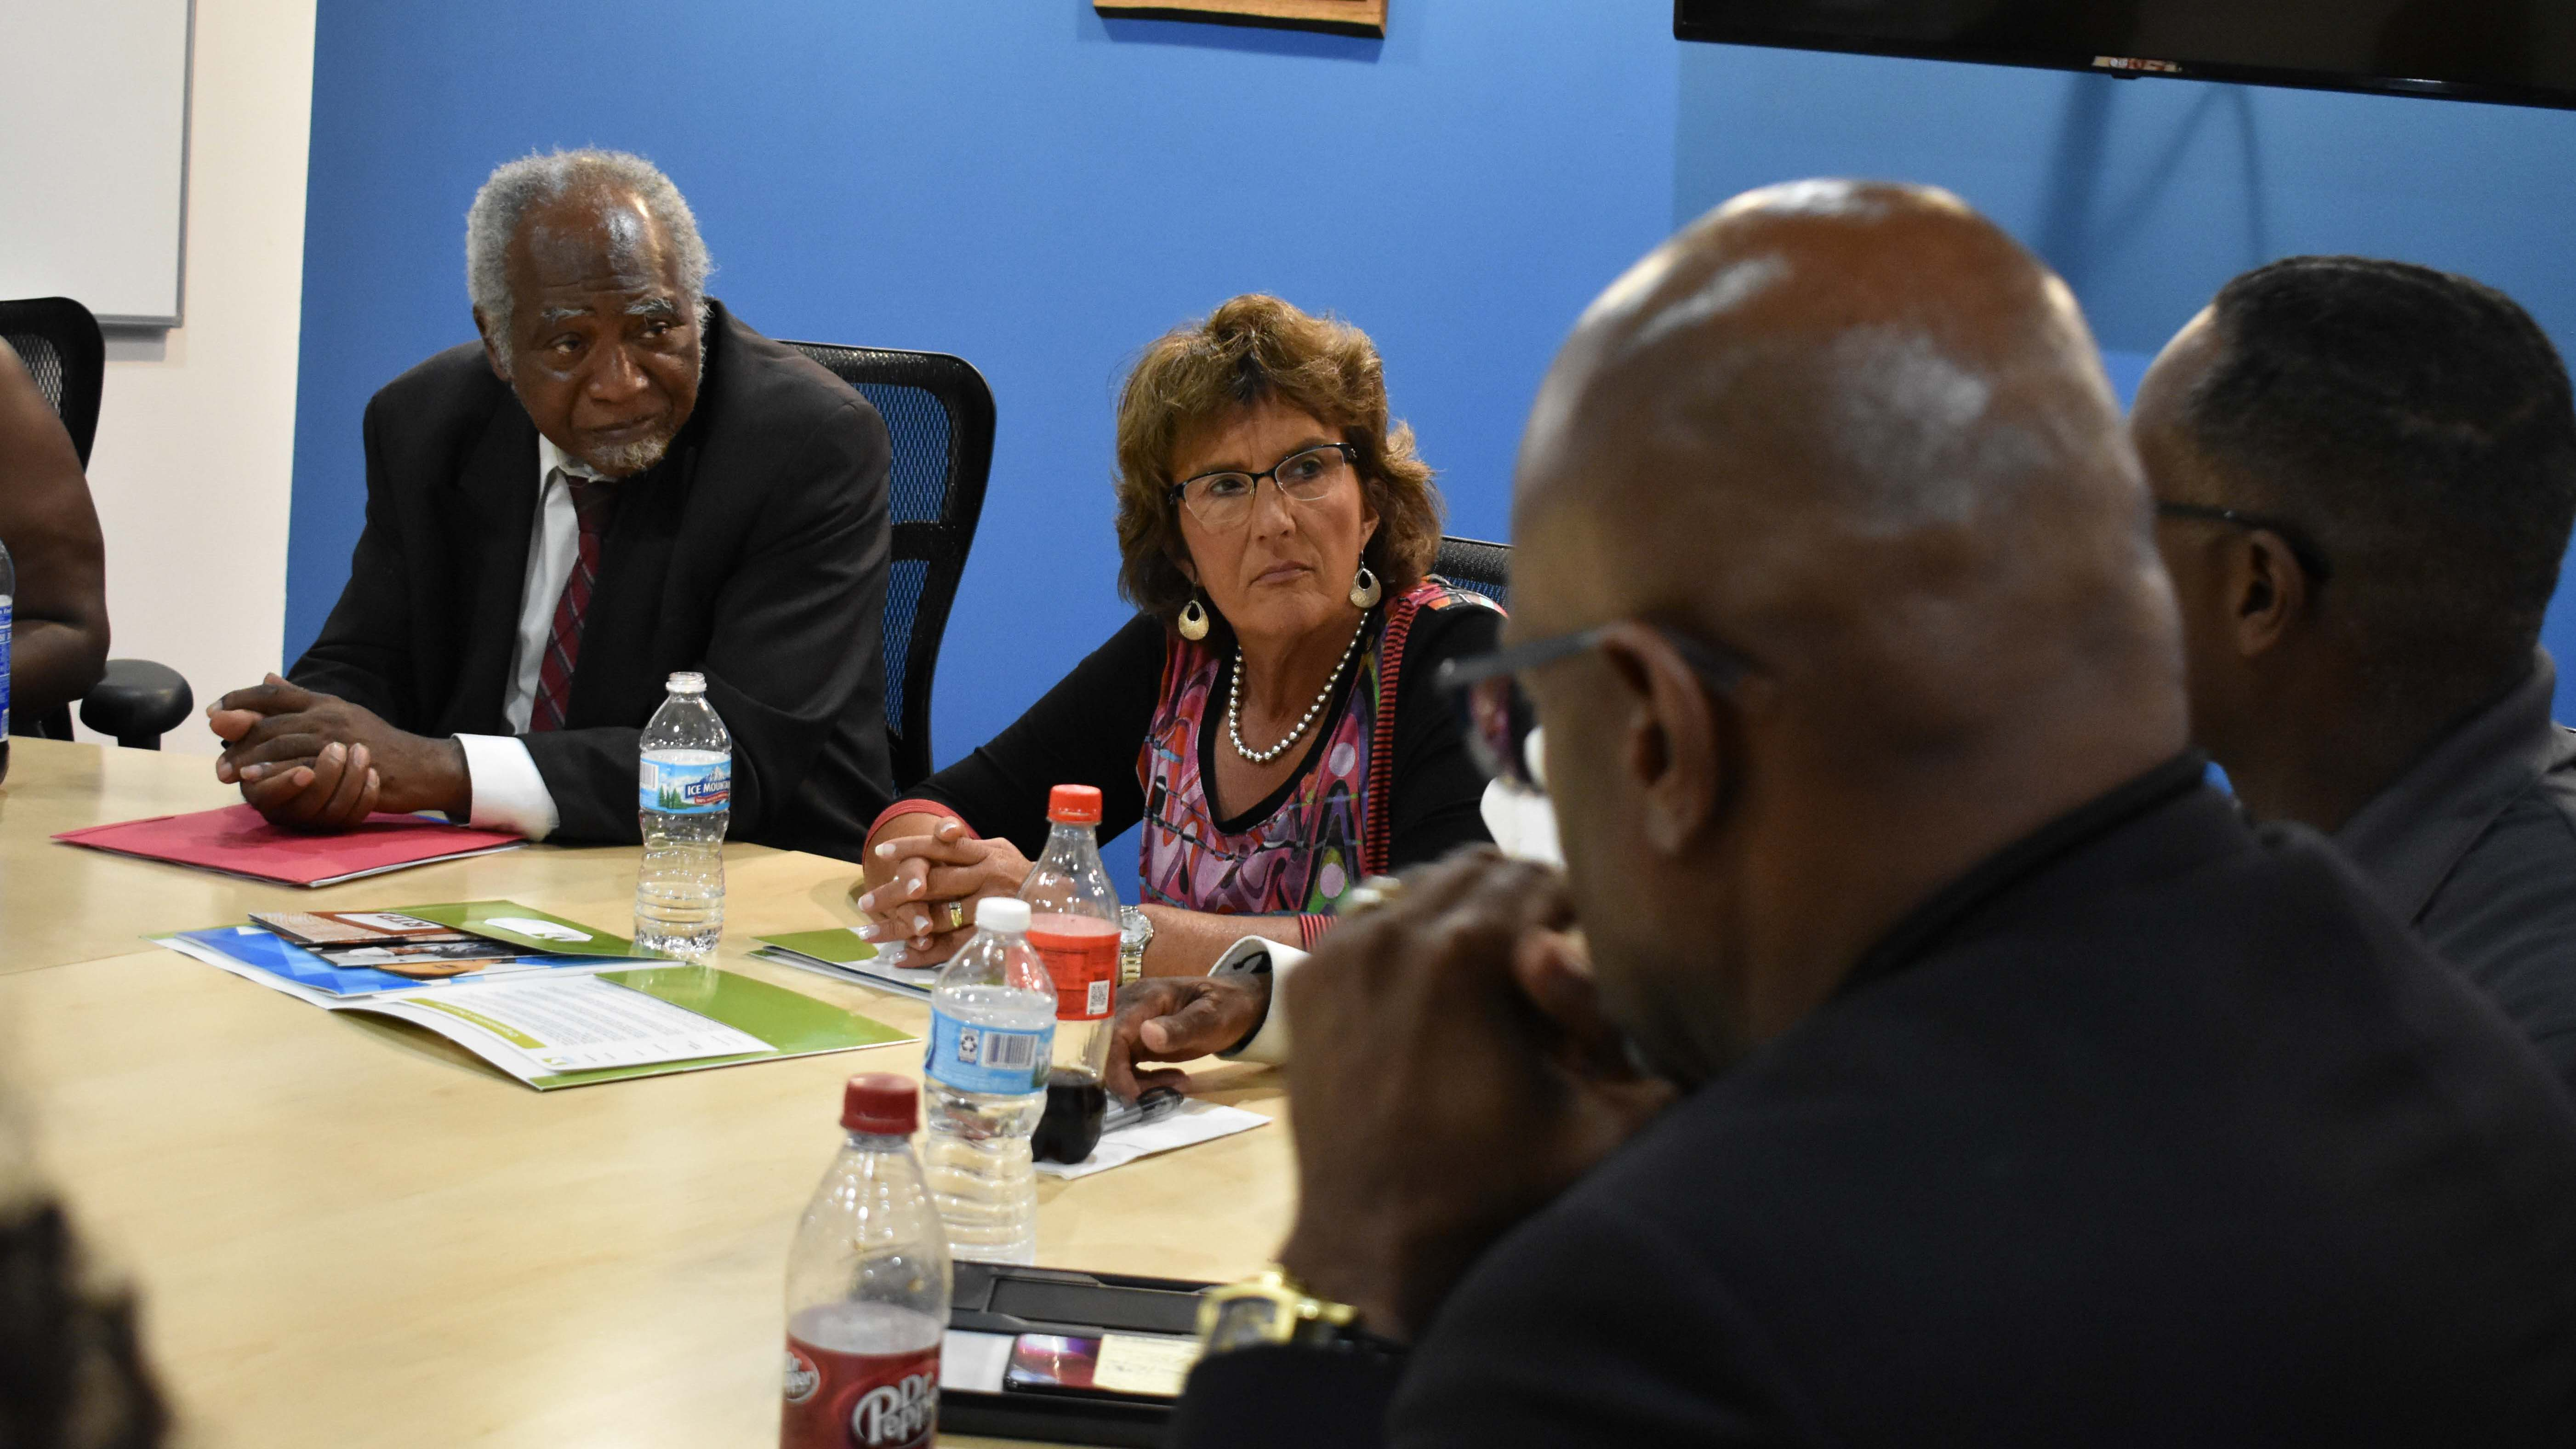 Walorski, Davis Explore Bipartisan Solutions in Visits to Chicago Community Support Organizations